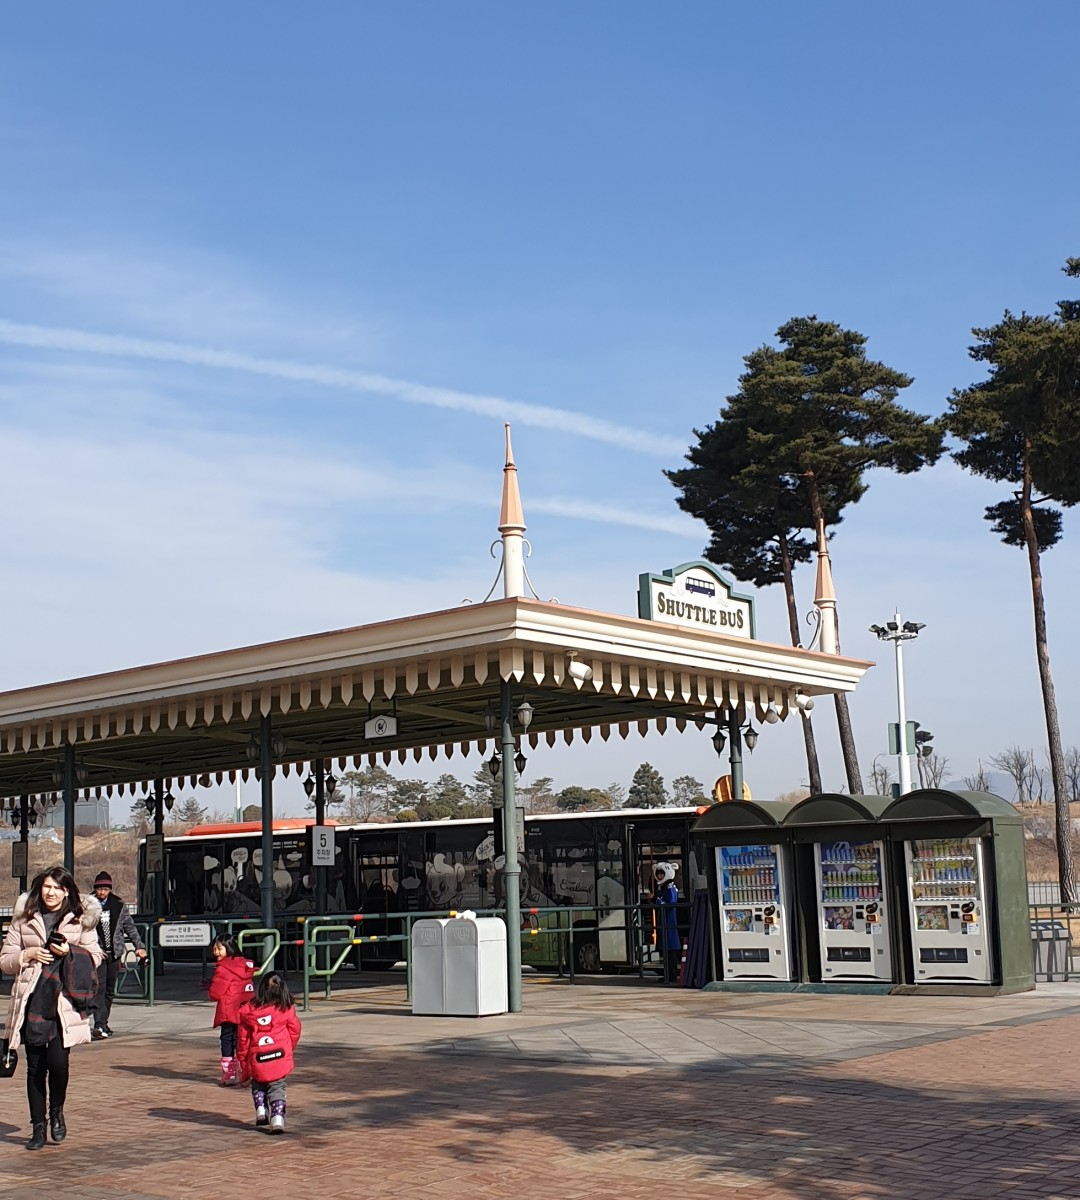 Turn left on exit out of the subway and cross the overhead bridge to catch the free shutttle bus ride to Everland